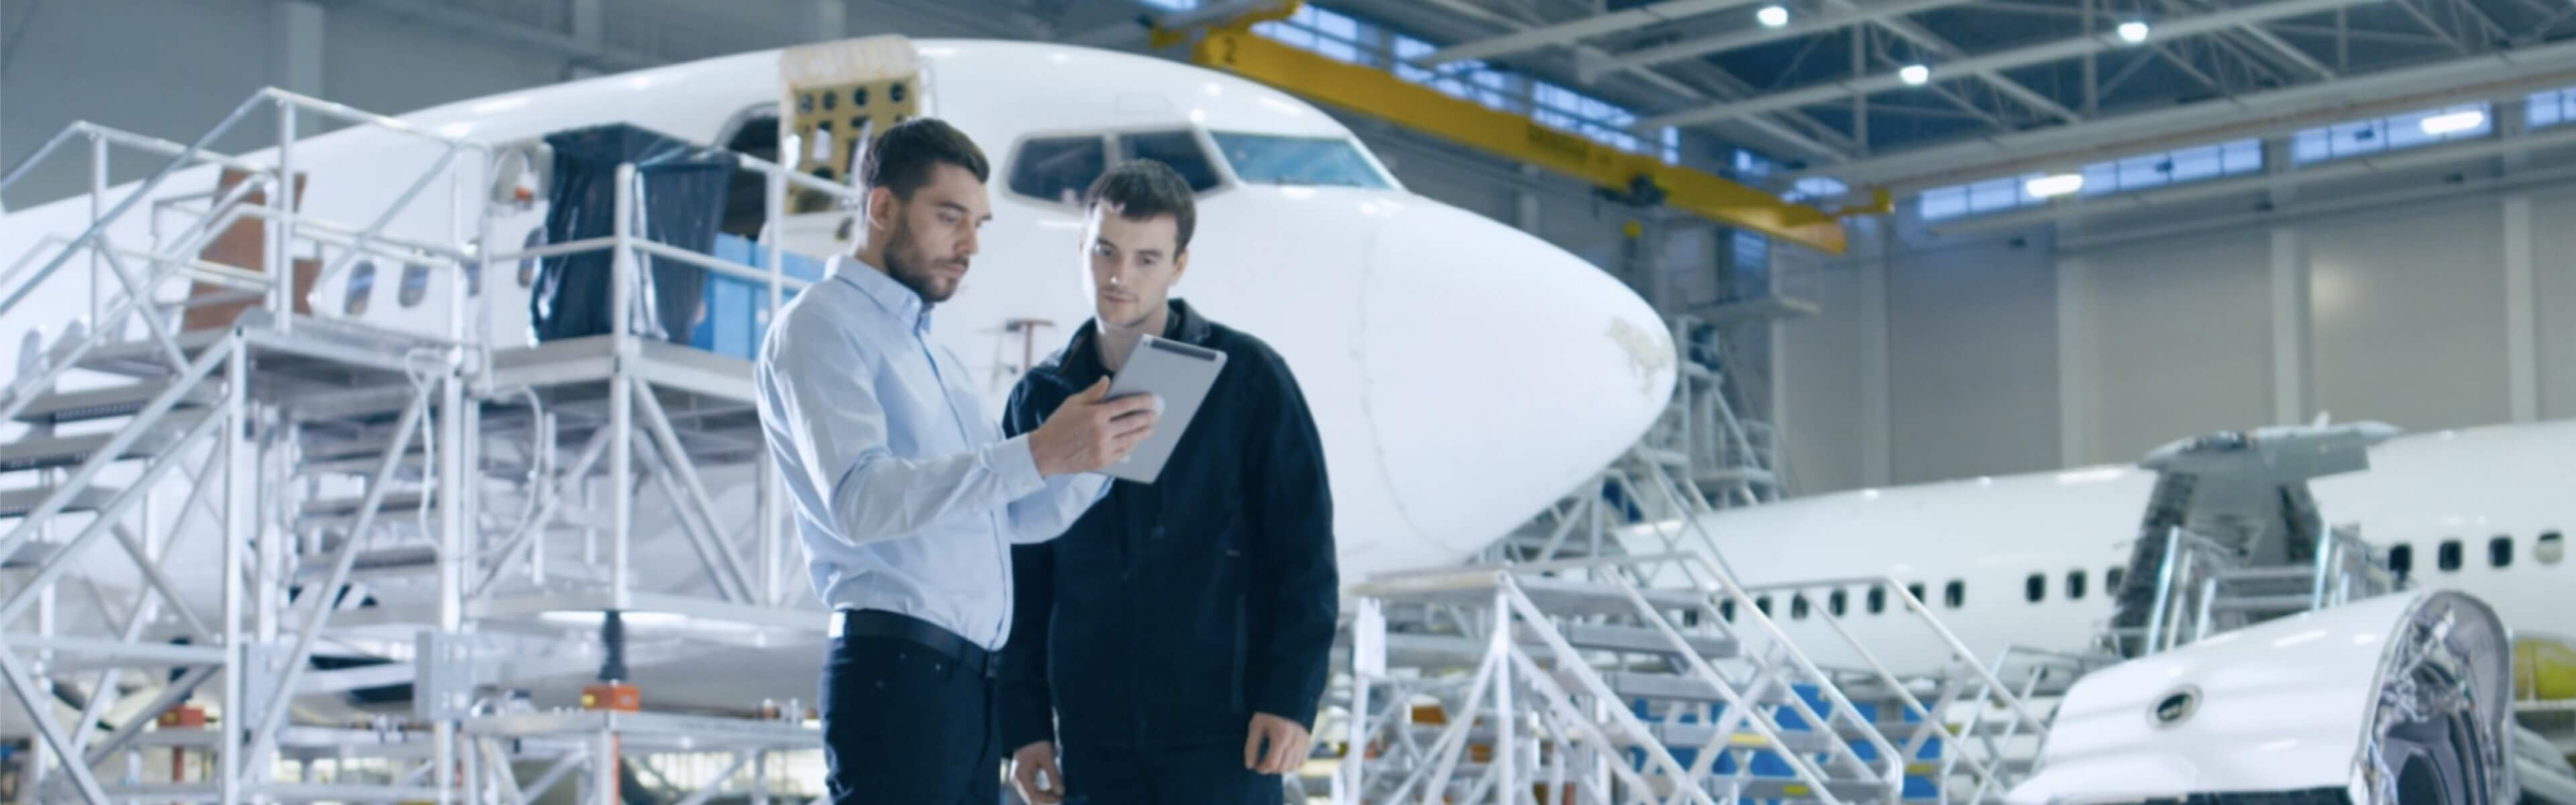 Digitalization's Endless Possibilities for the Aviation Industry